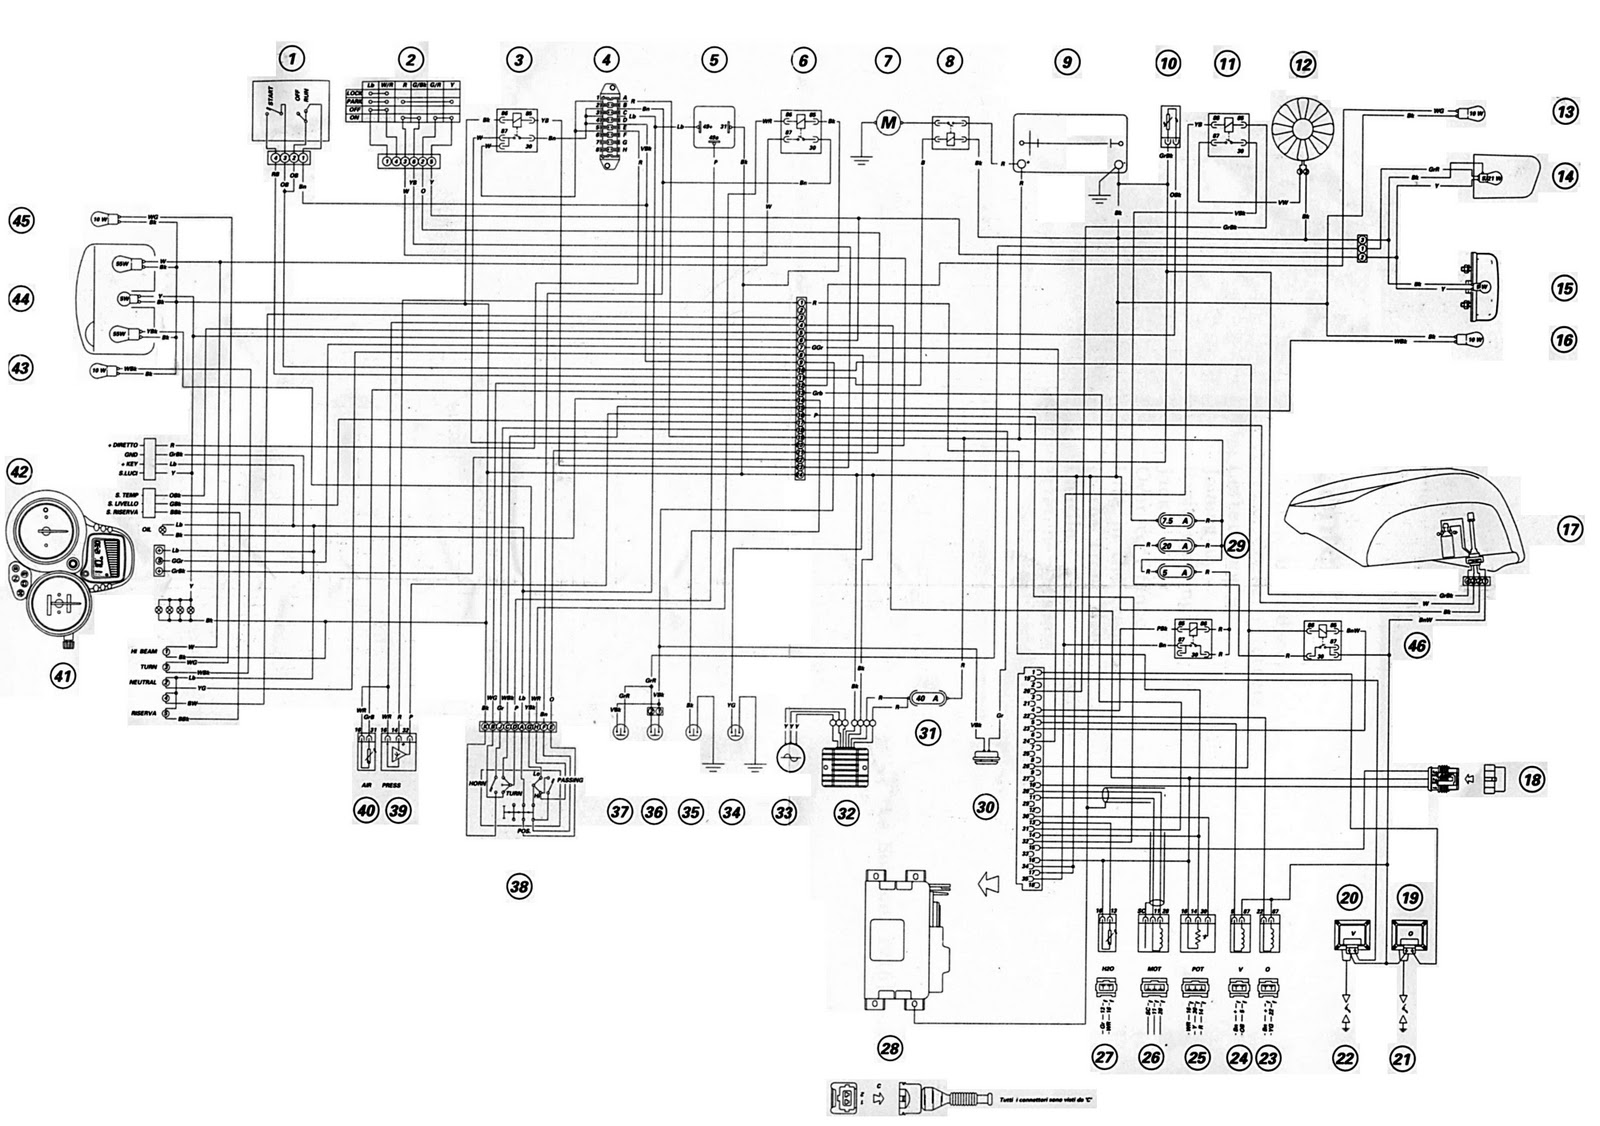 May 2011 | All about Wiring Diagrams